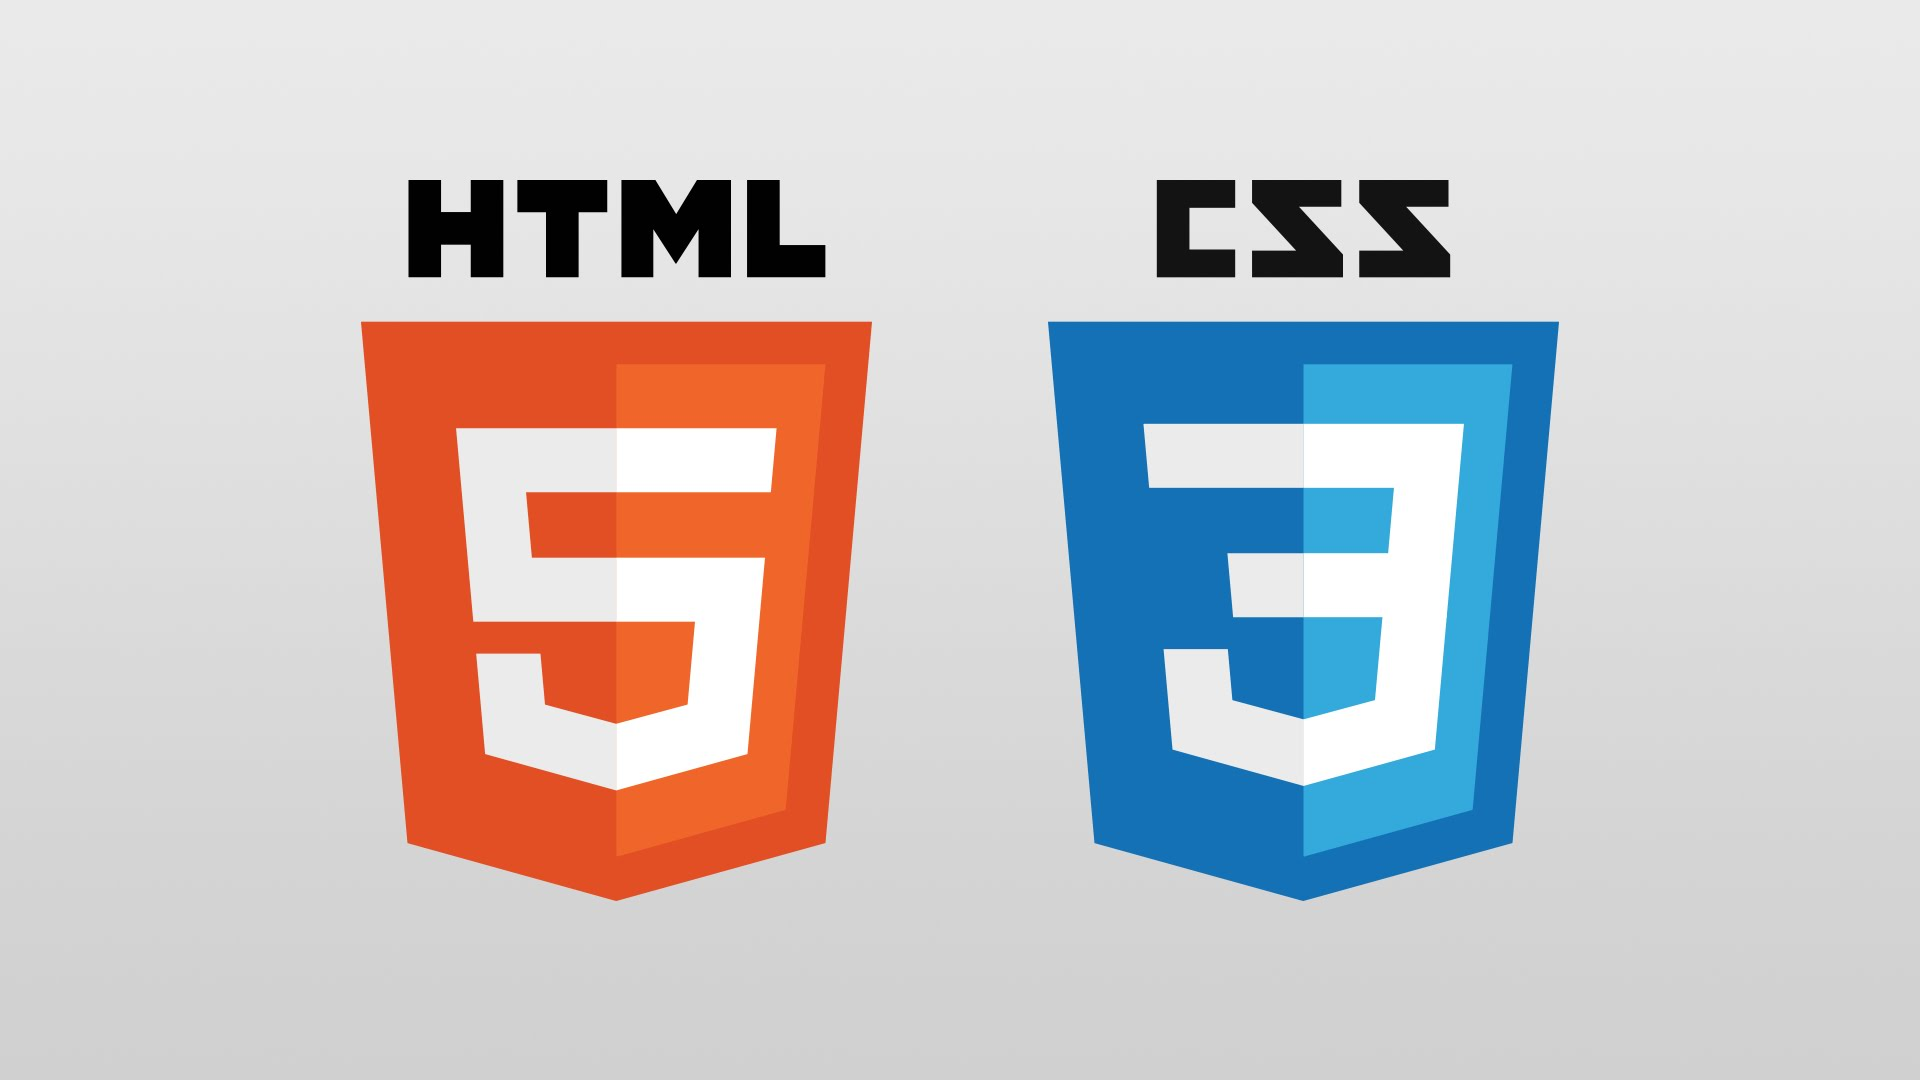 microsoft, html5, css, mcsd, it certification exams